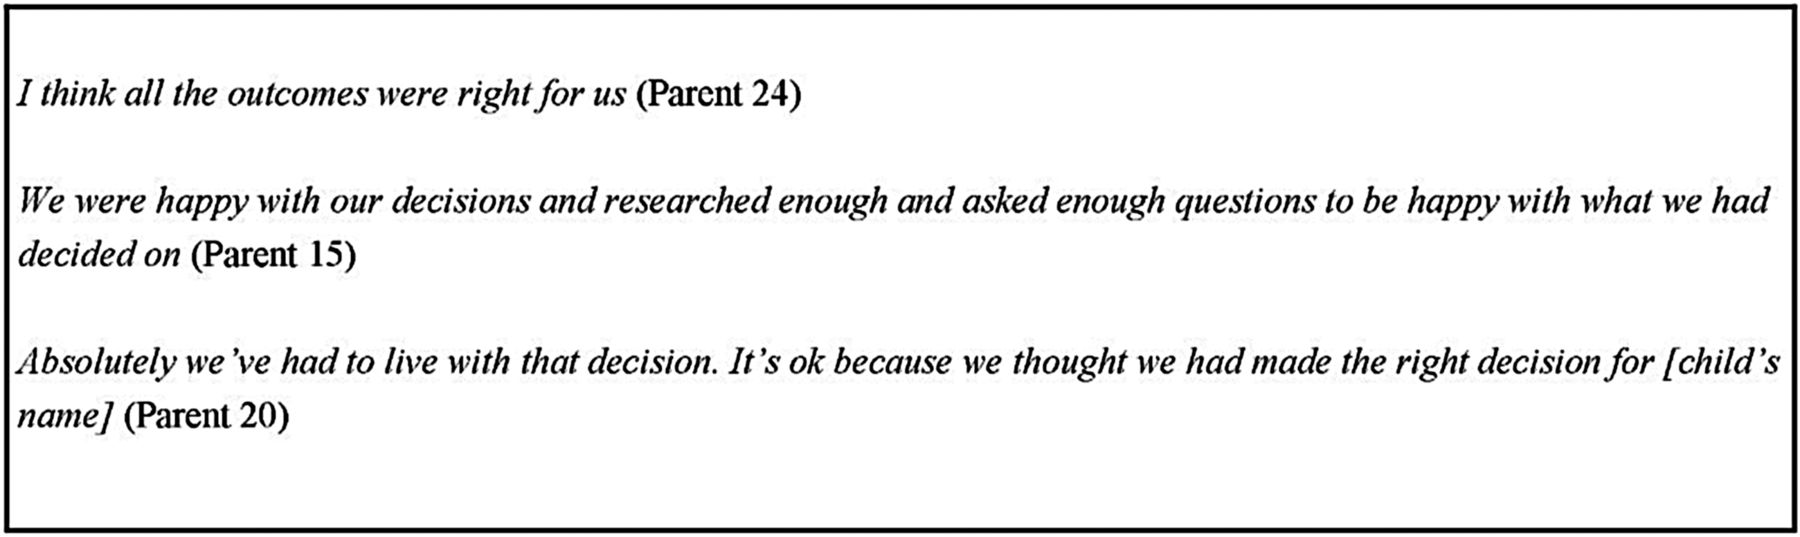 parents and end of life decision making for their child roles and figure